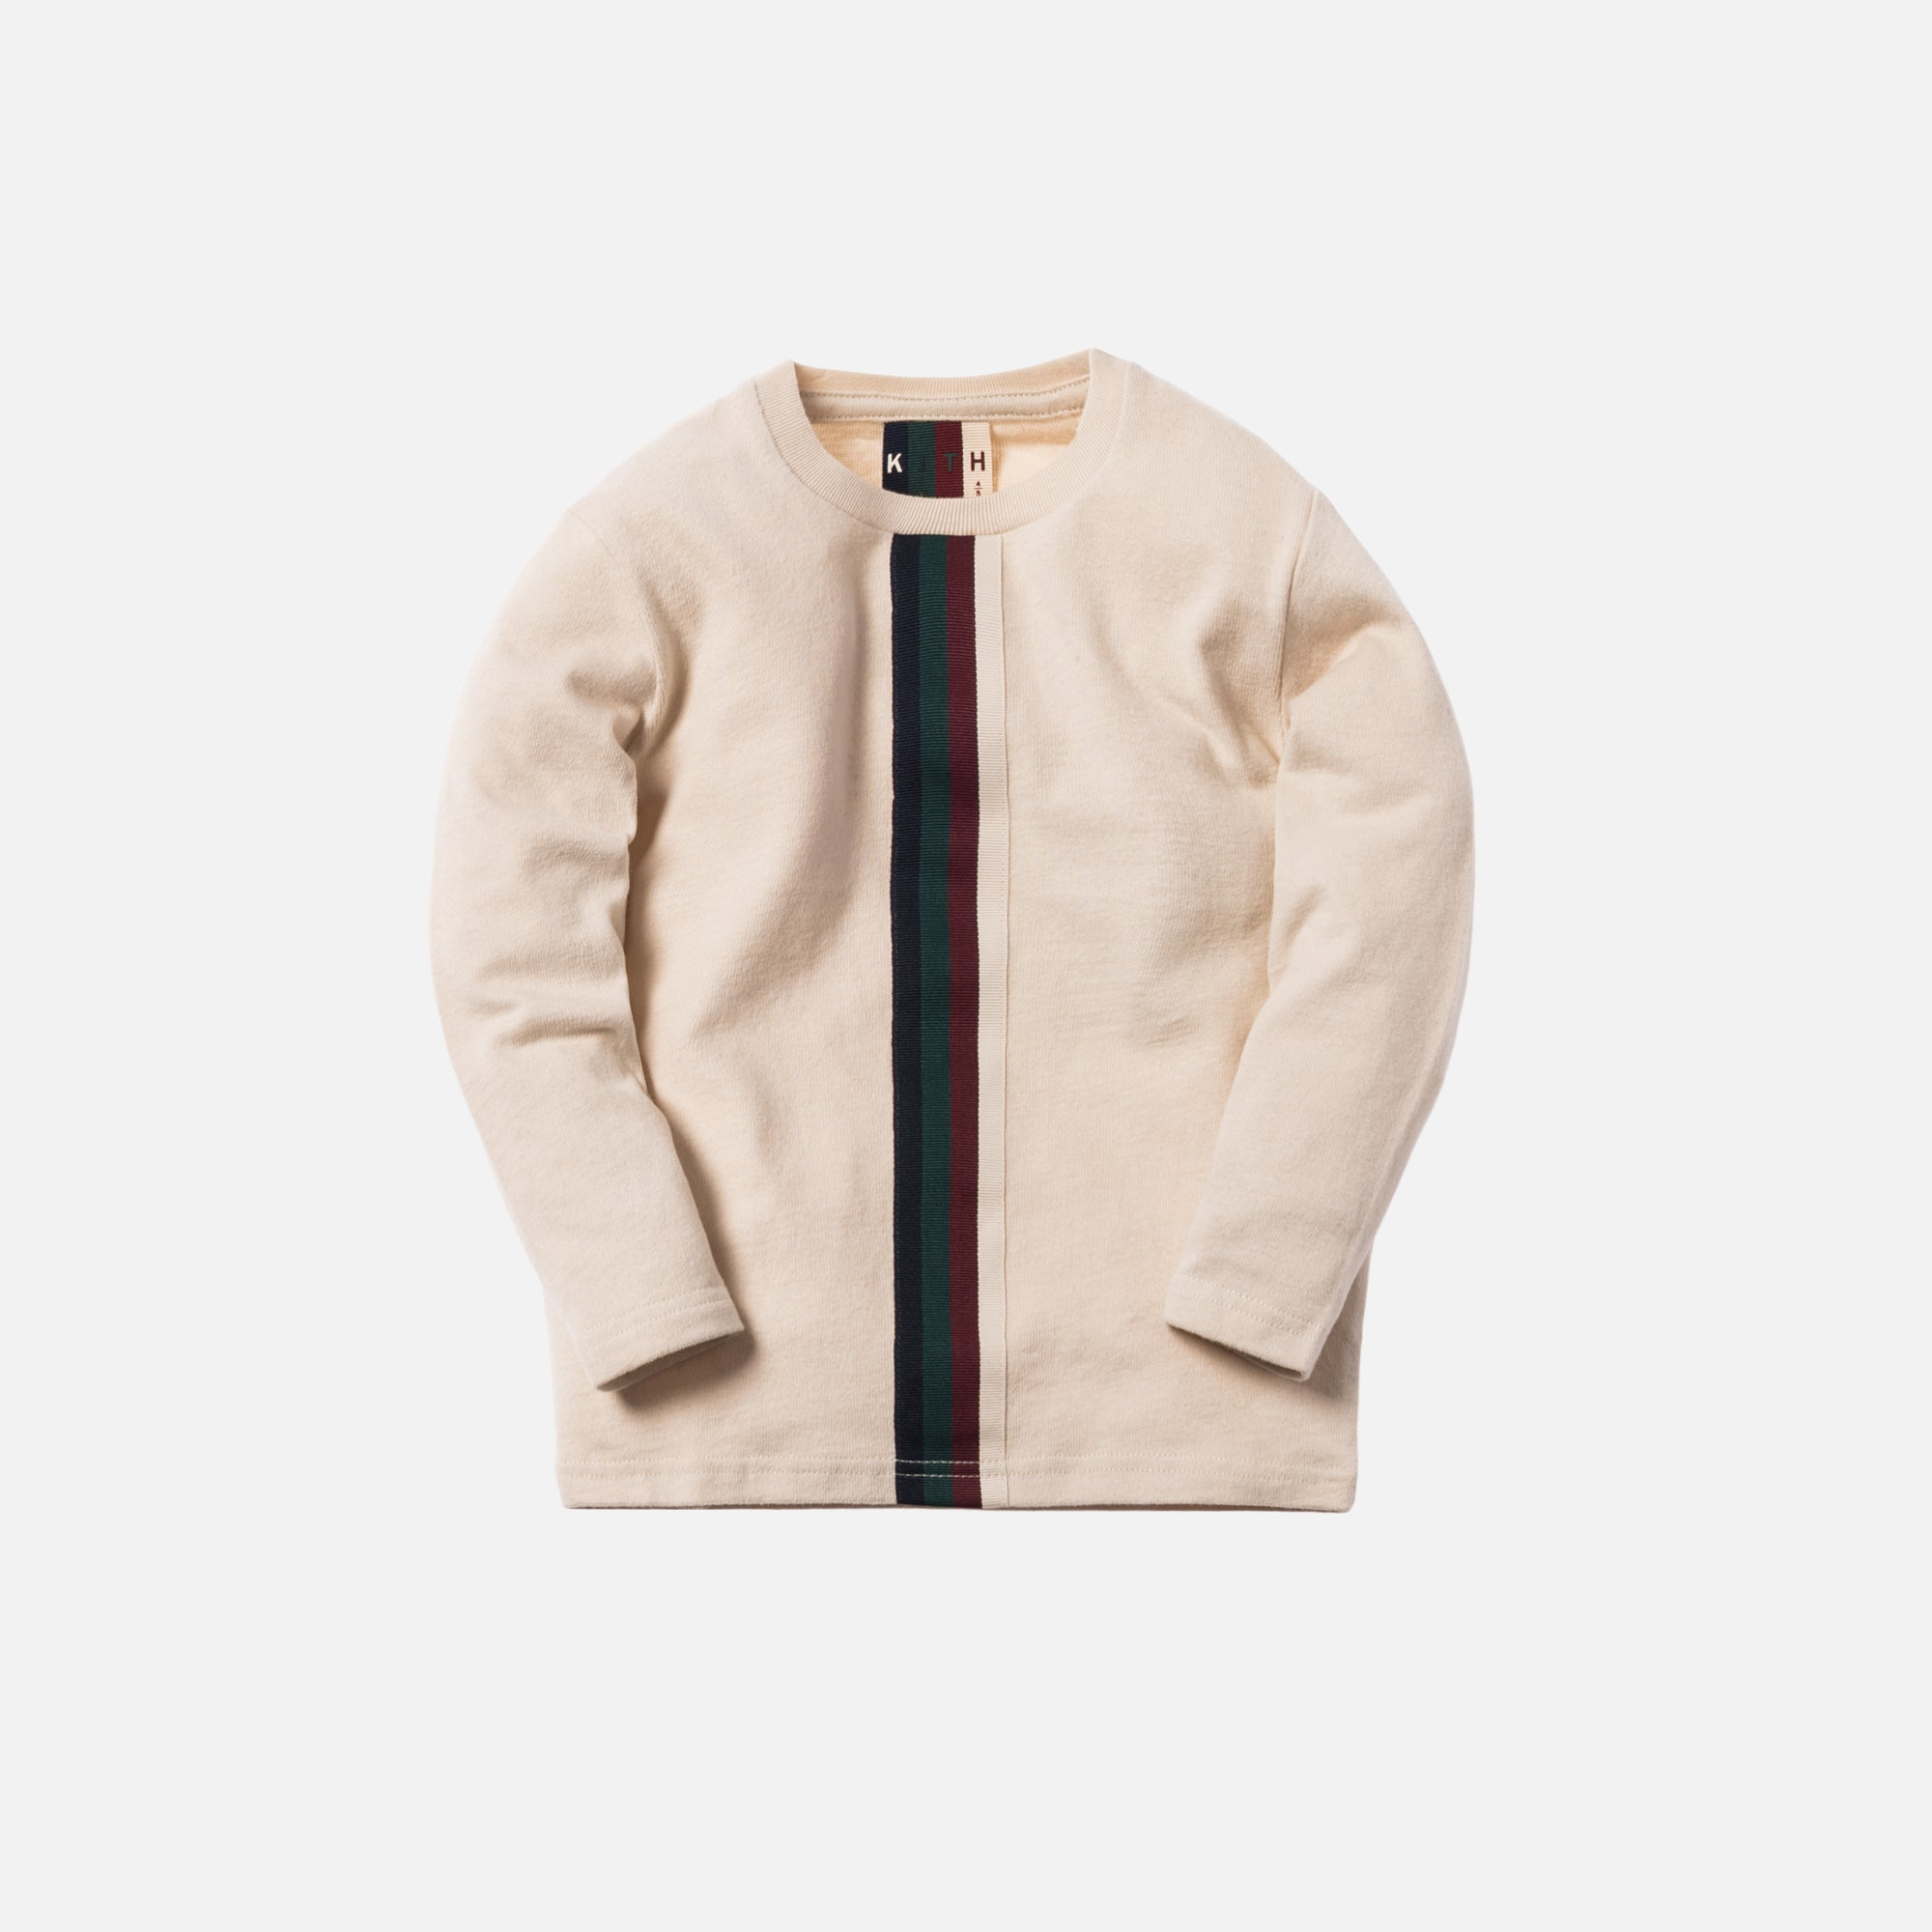 Kith Kids Grosgrain L/S Tee - Natural